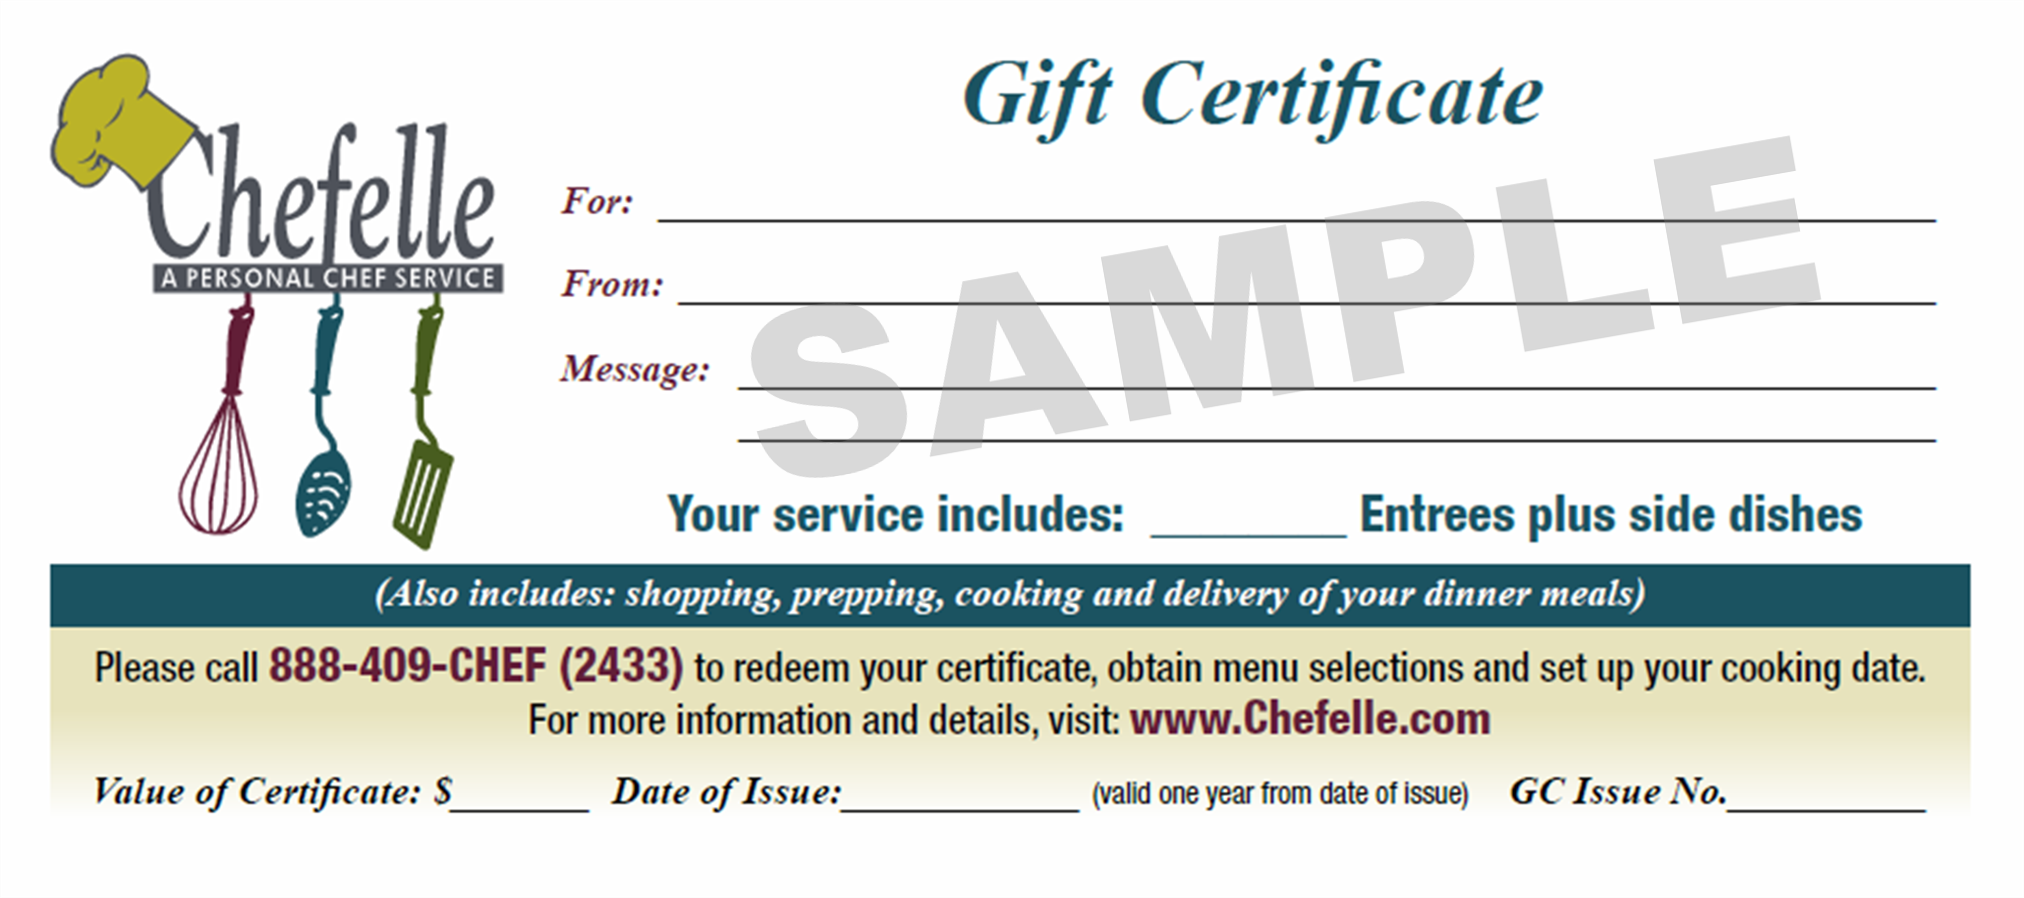 Gift Certificates Chefelle 2